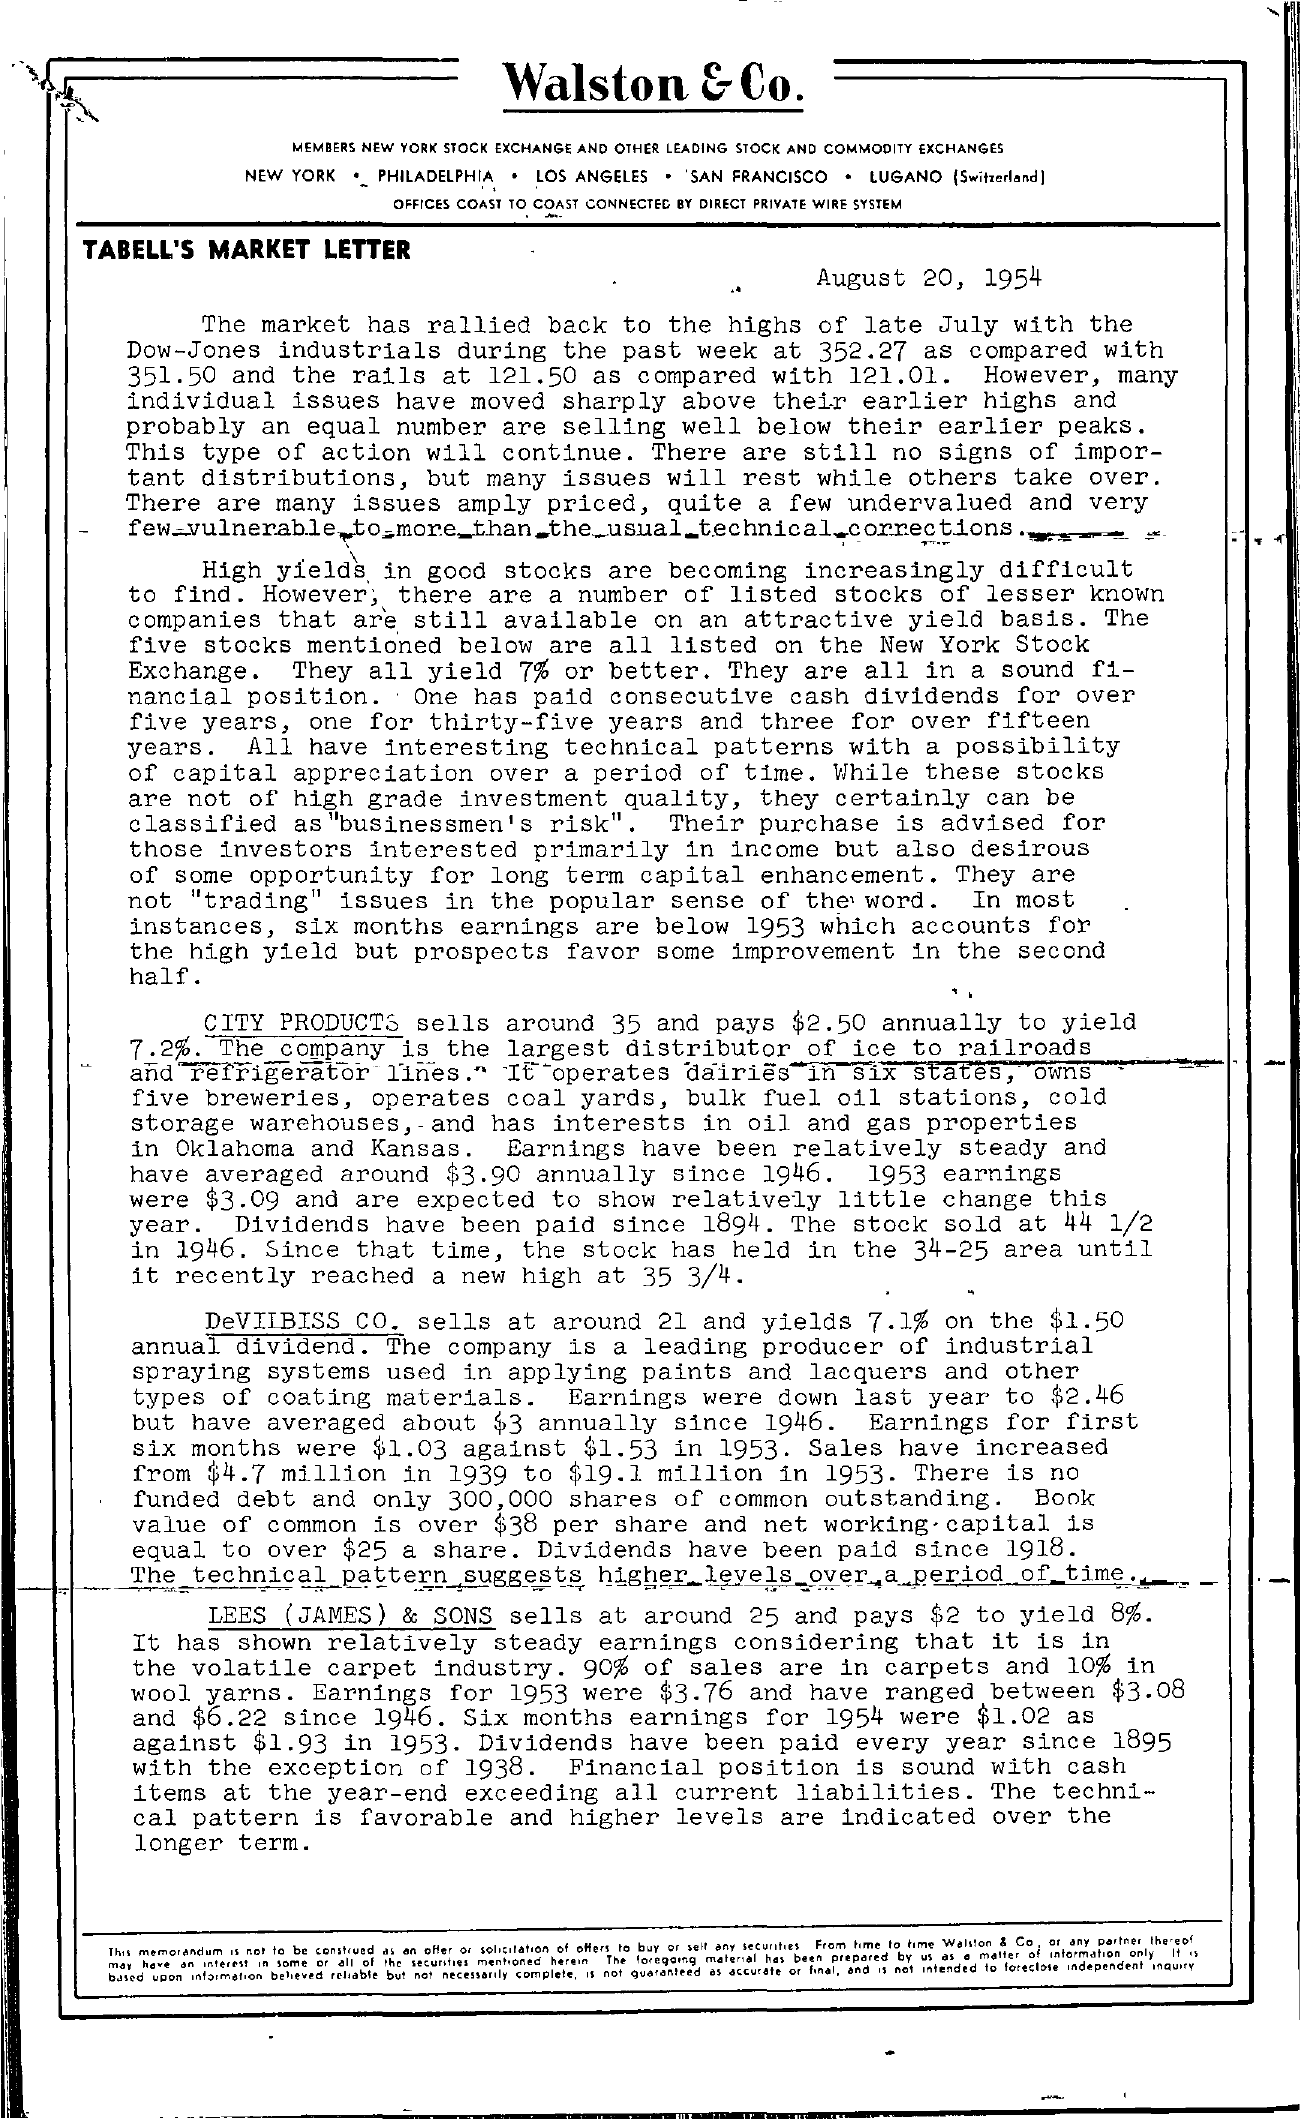 Tabell's Market Letter - August 20, 1954 page 1